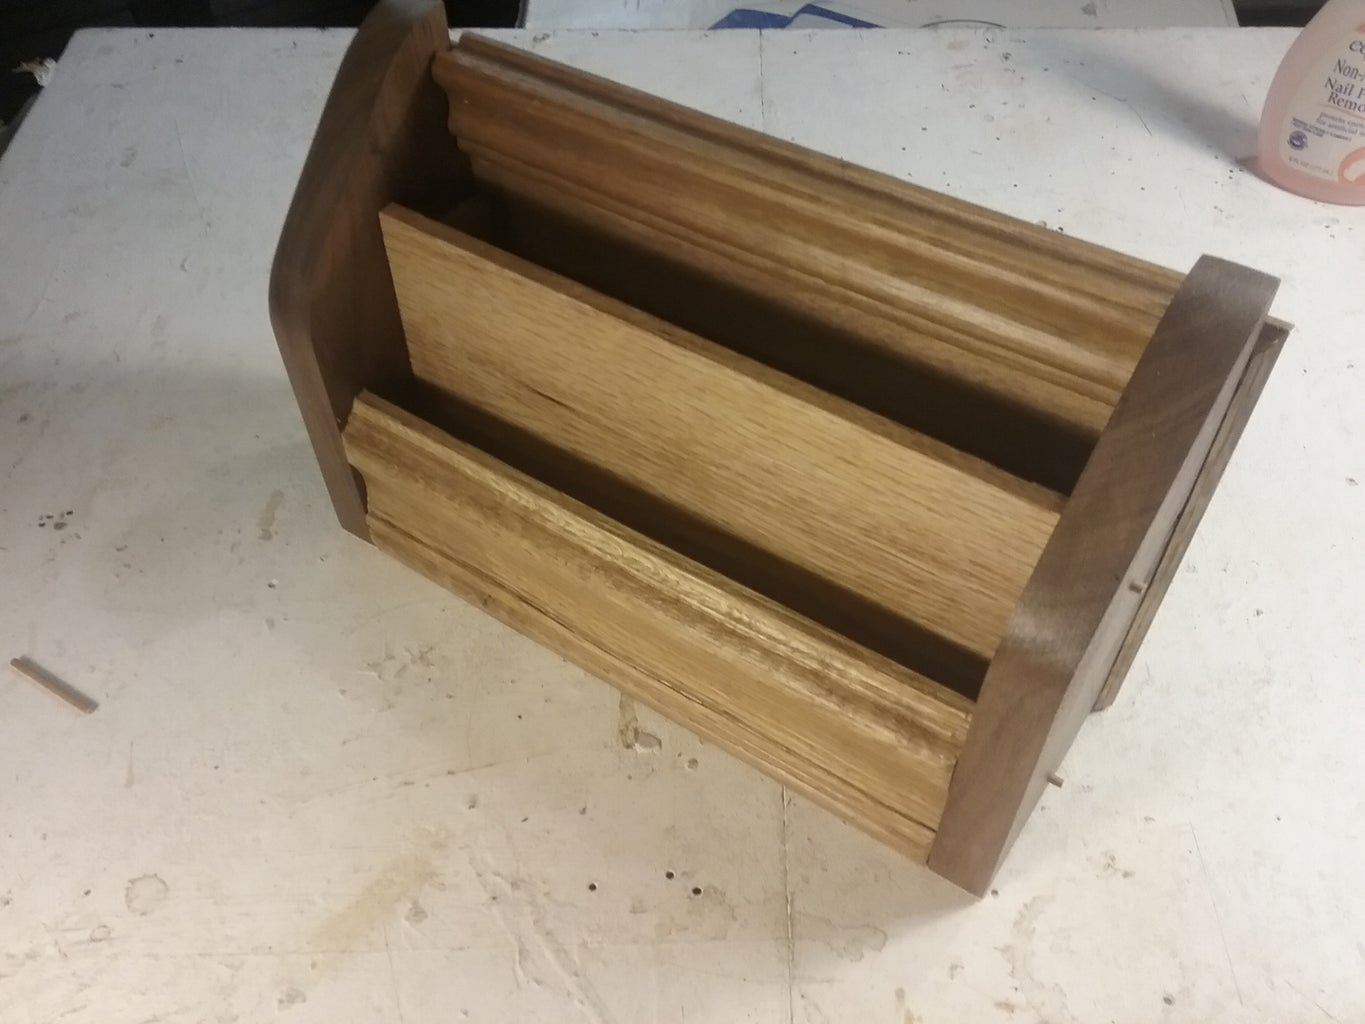 Dowels to Hold Tray and Finishing Touches